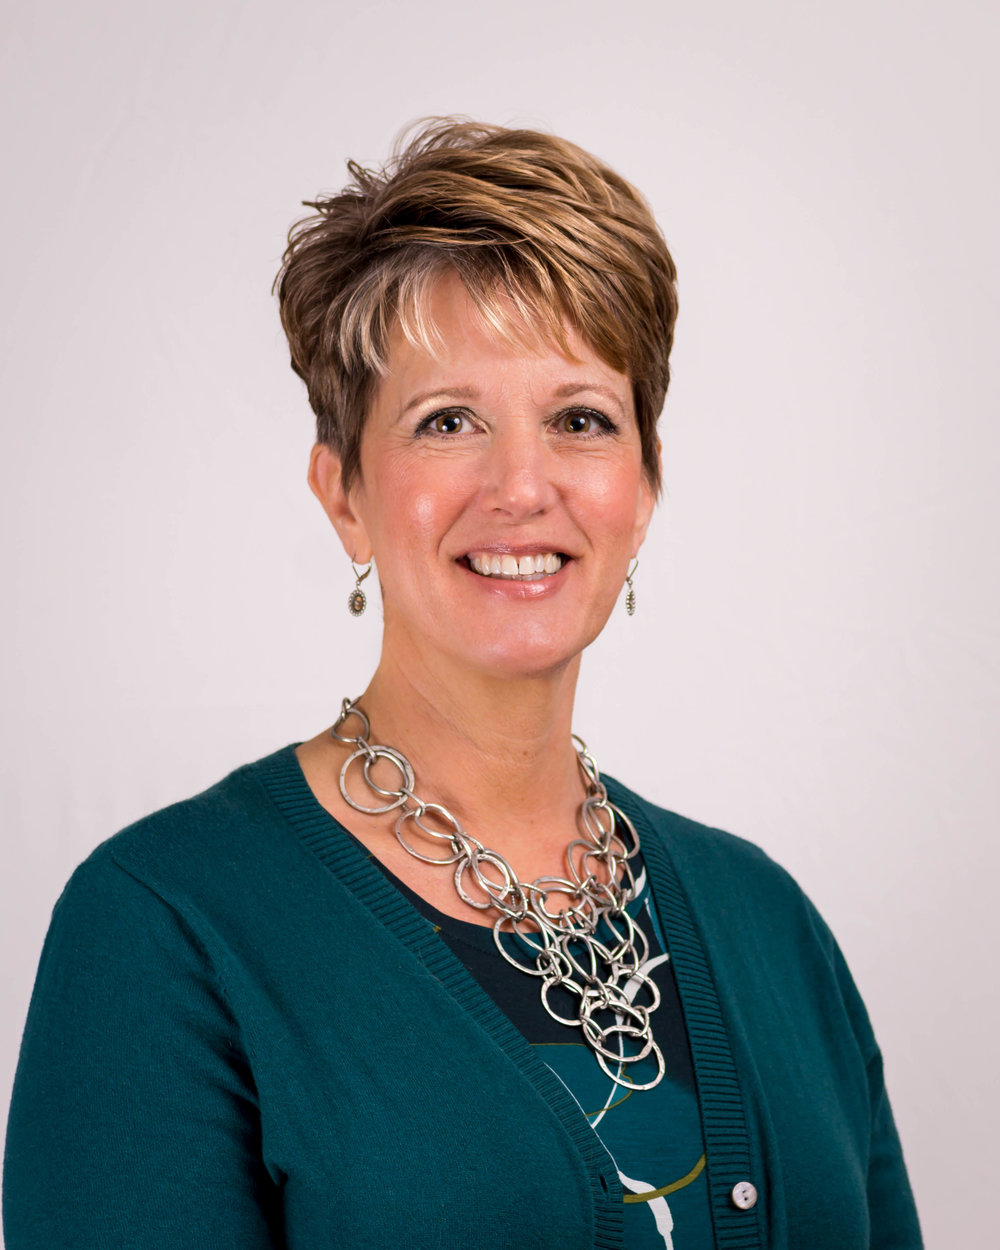 Build your personal brand with a professional head shot! -